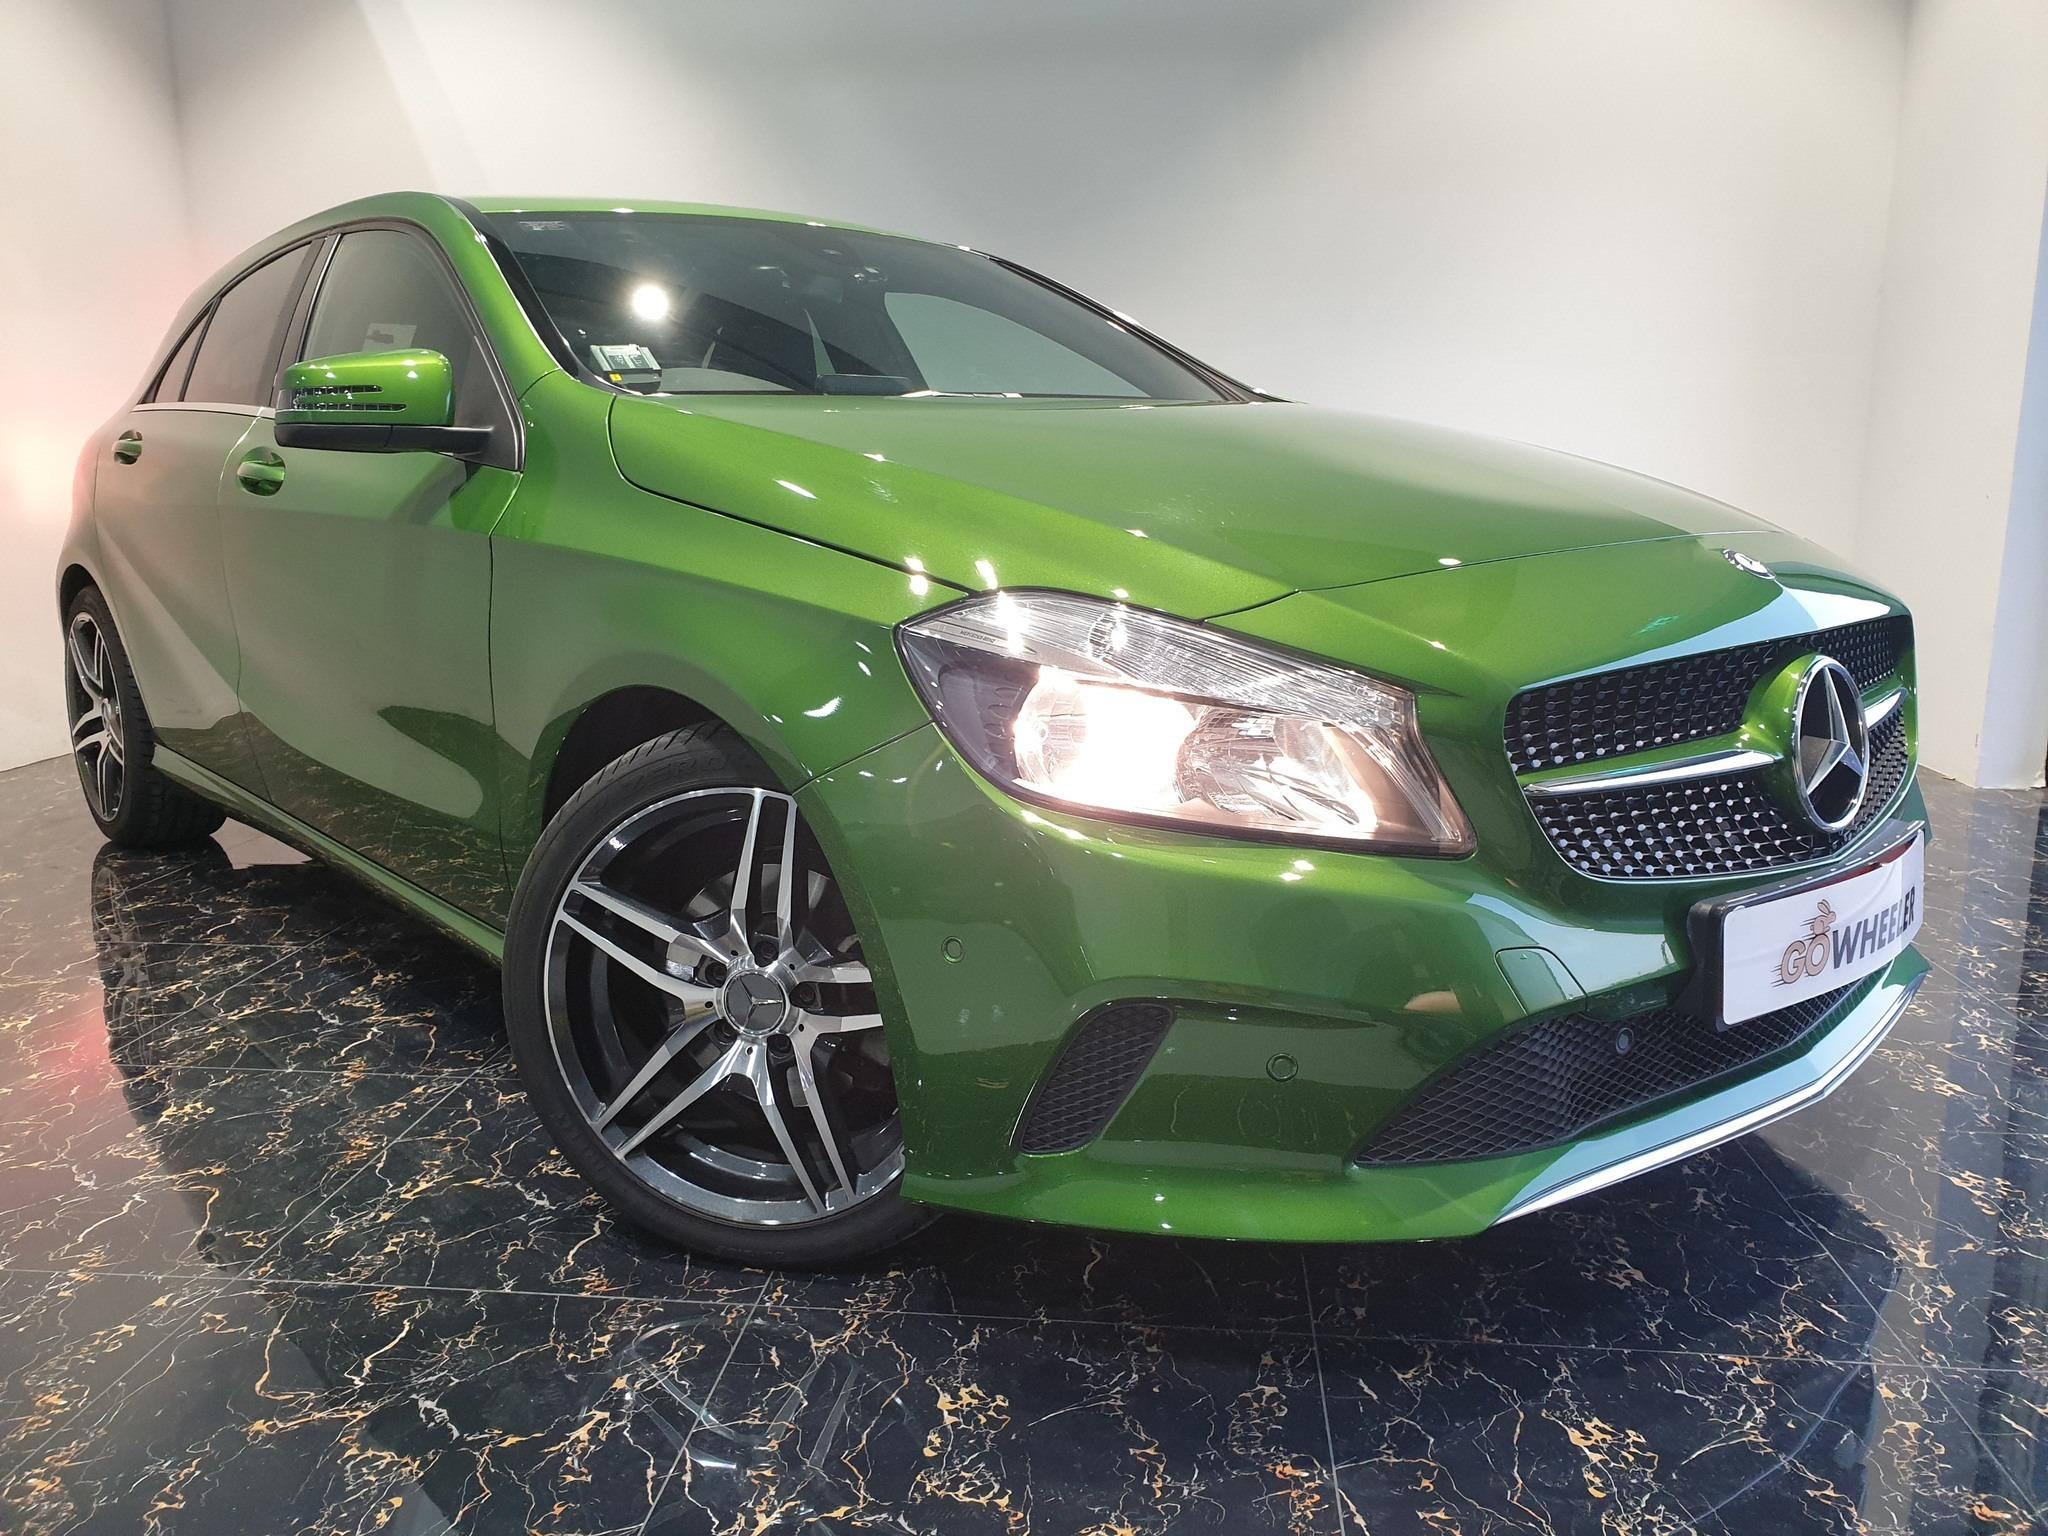 Mercedes Benz A180 Facelift Style (R17 HLG) (Revised OPC)